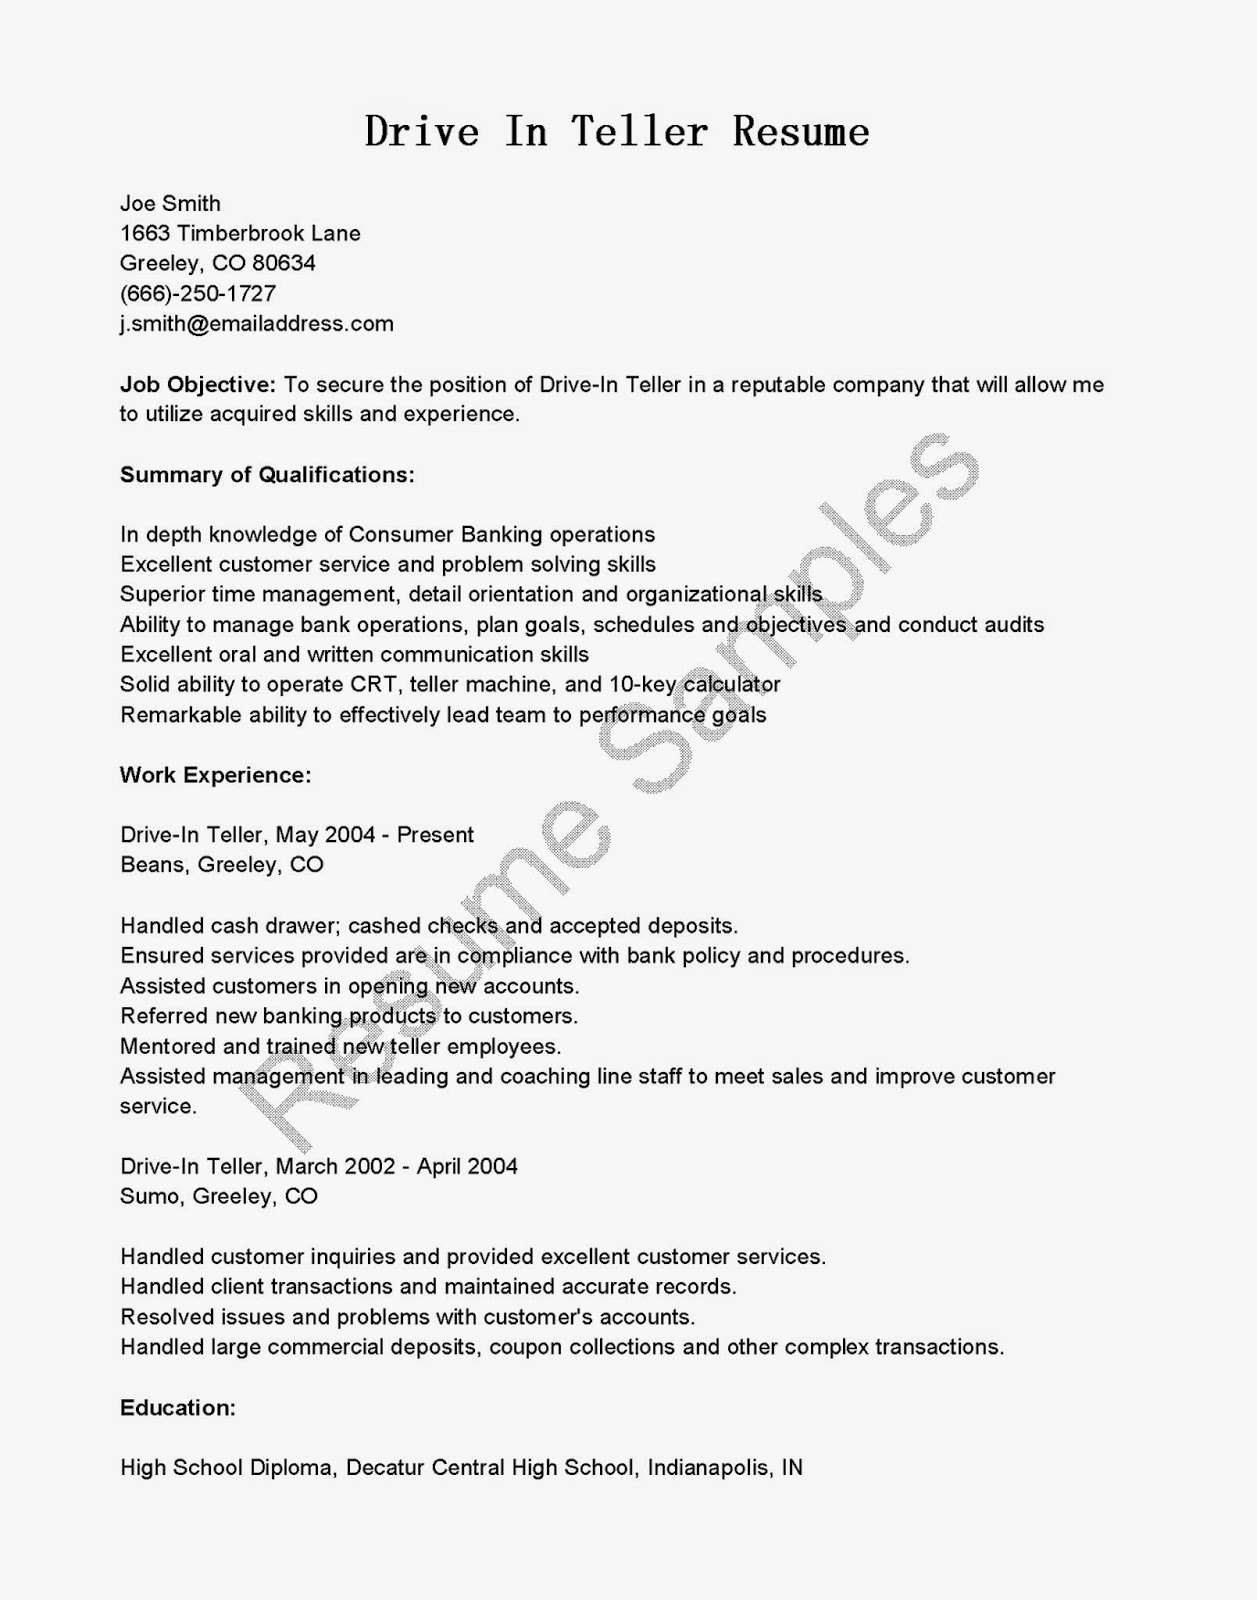 resume Resume Examples Bank Teller coates library plagiarism detection free resume for banking jobs how to write bank pdf download the objective of a